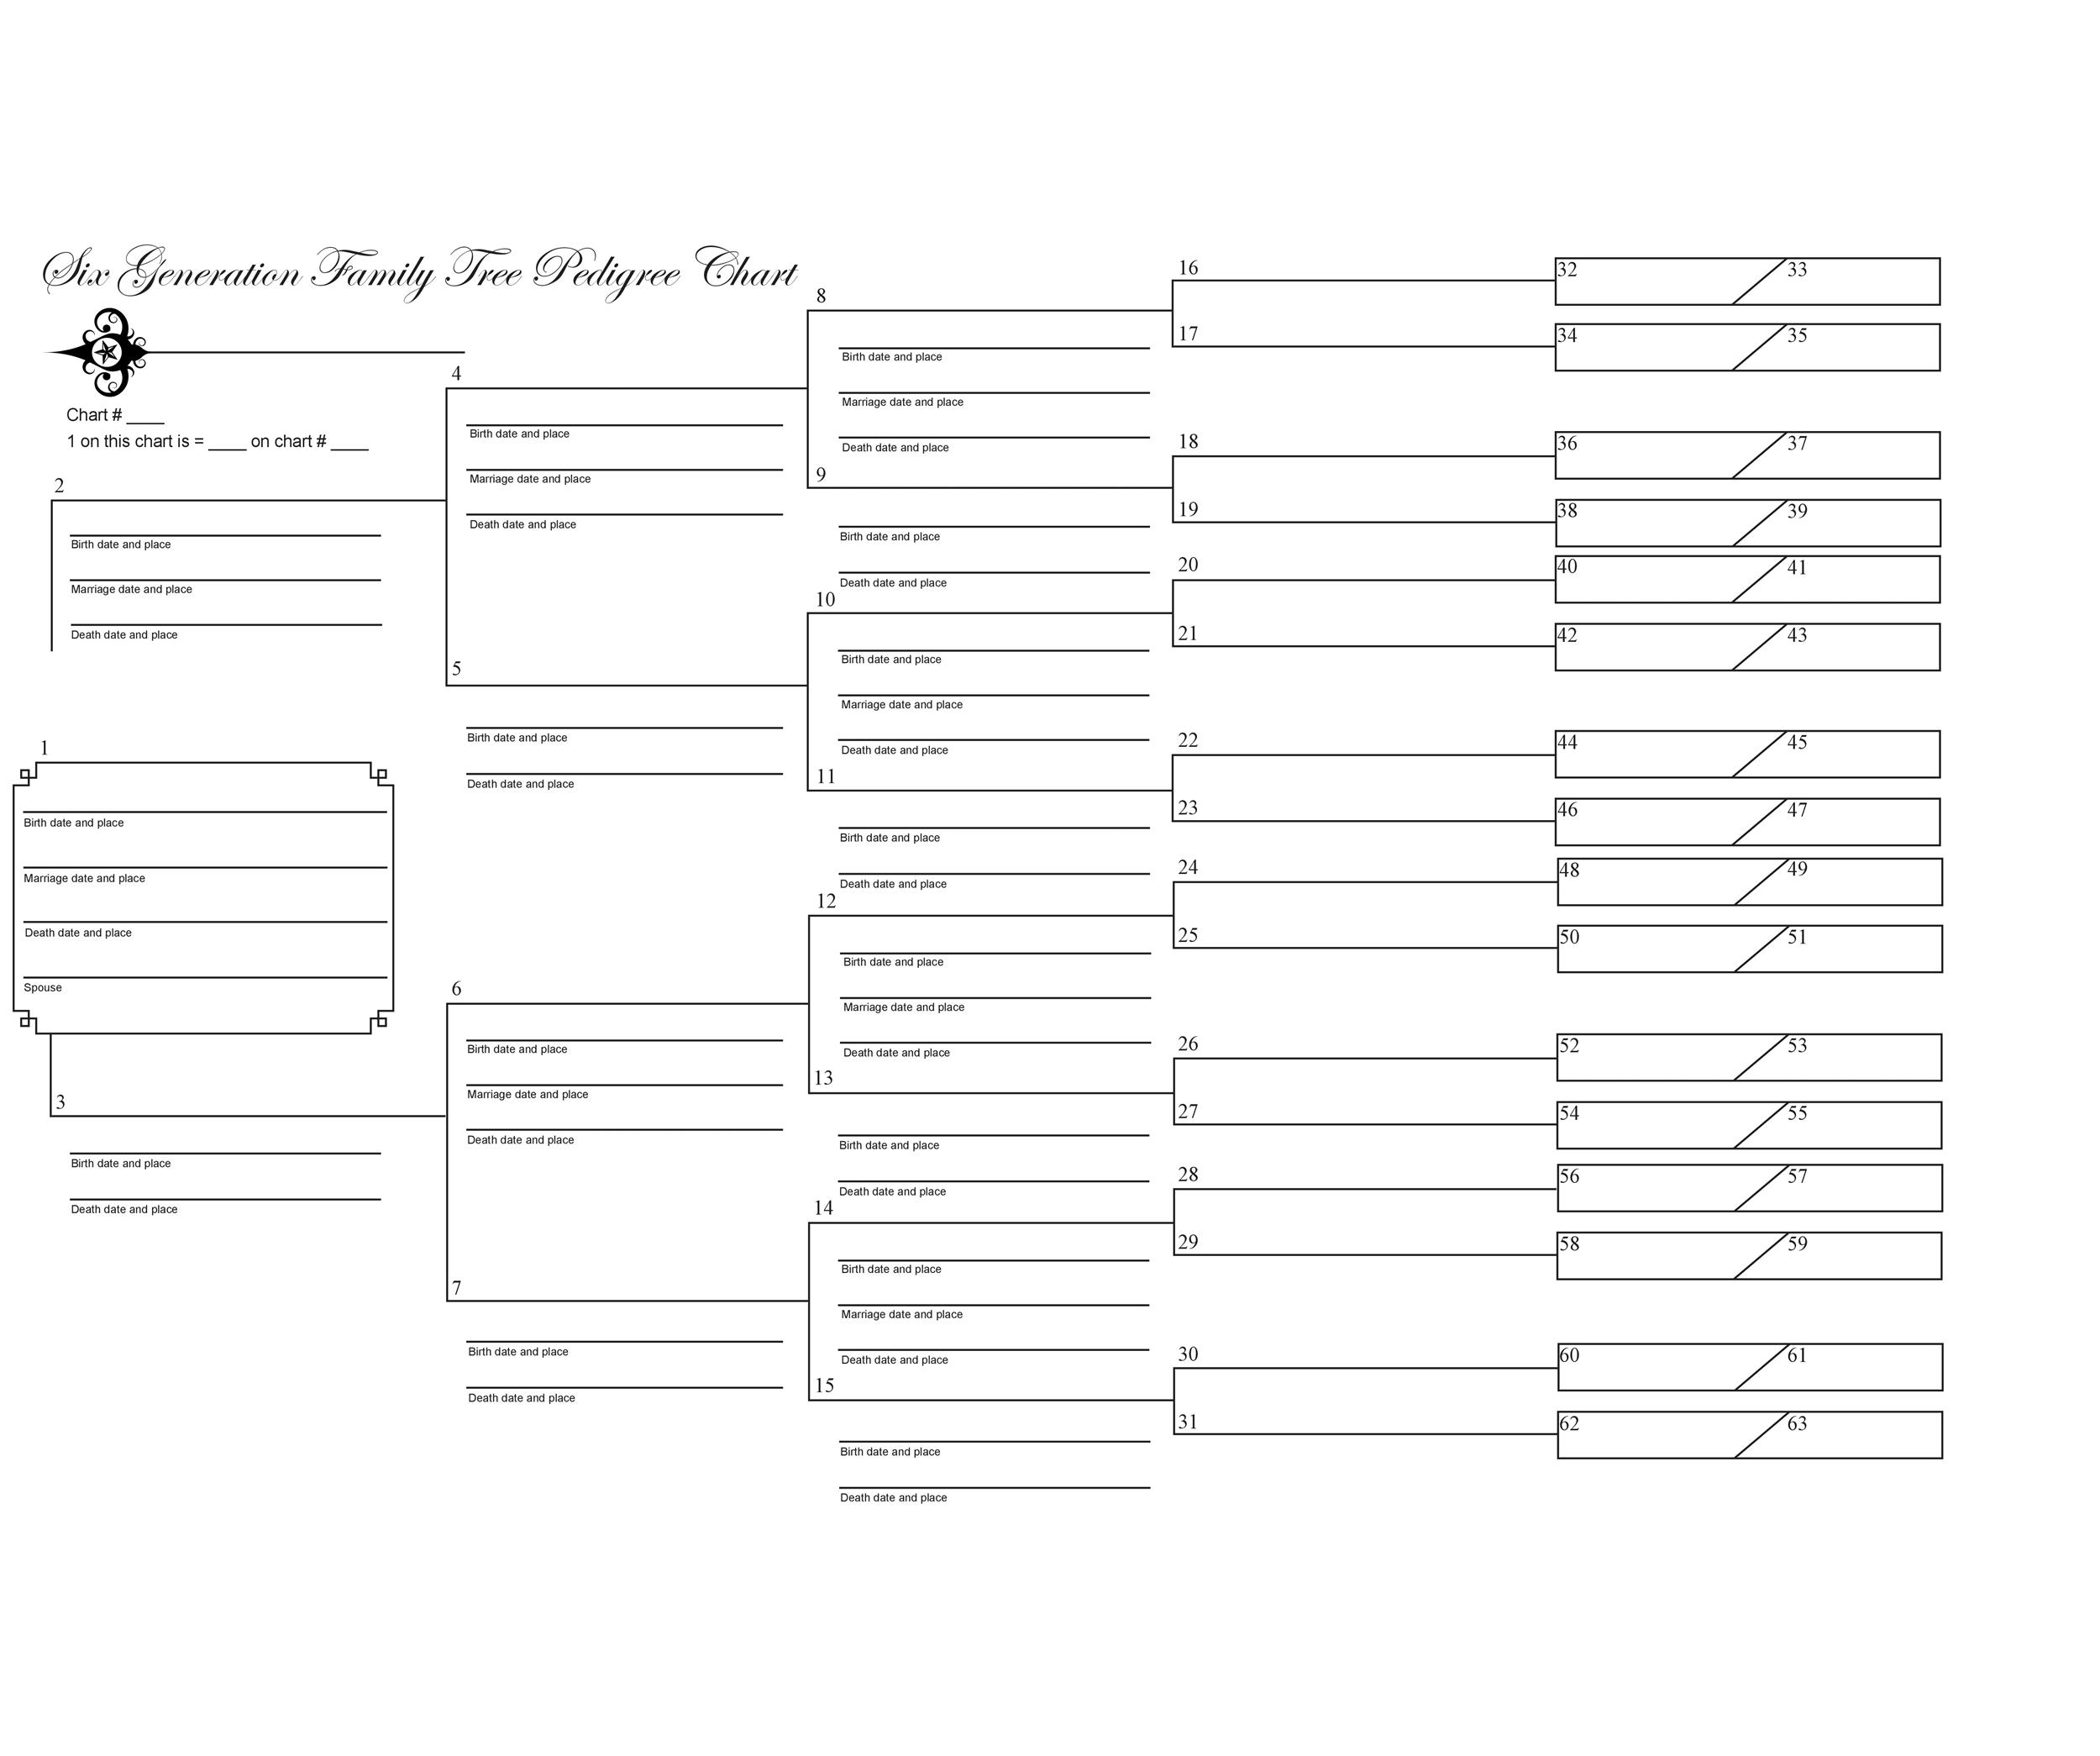 50+ Free Family Tree Templates (Word, Excel, PDF) - Template Lab - family tree chart template